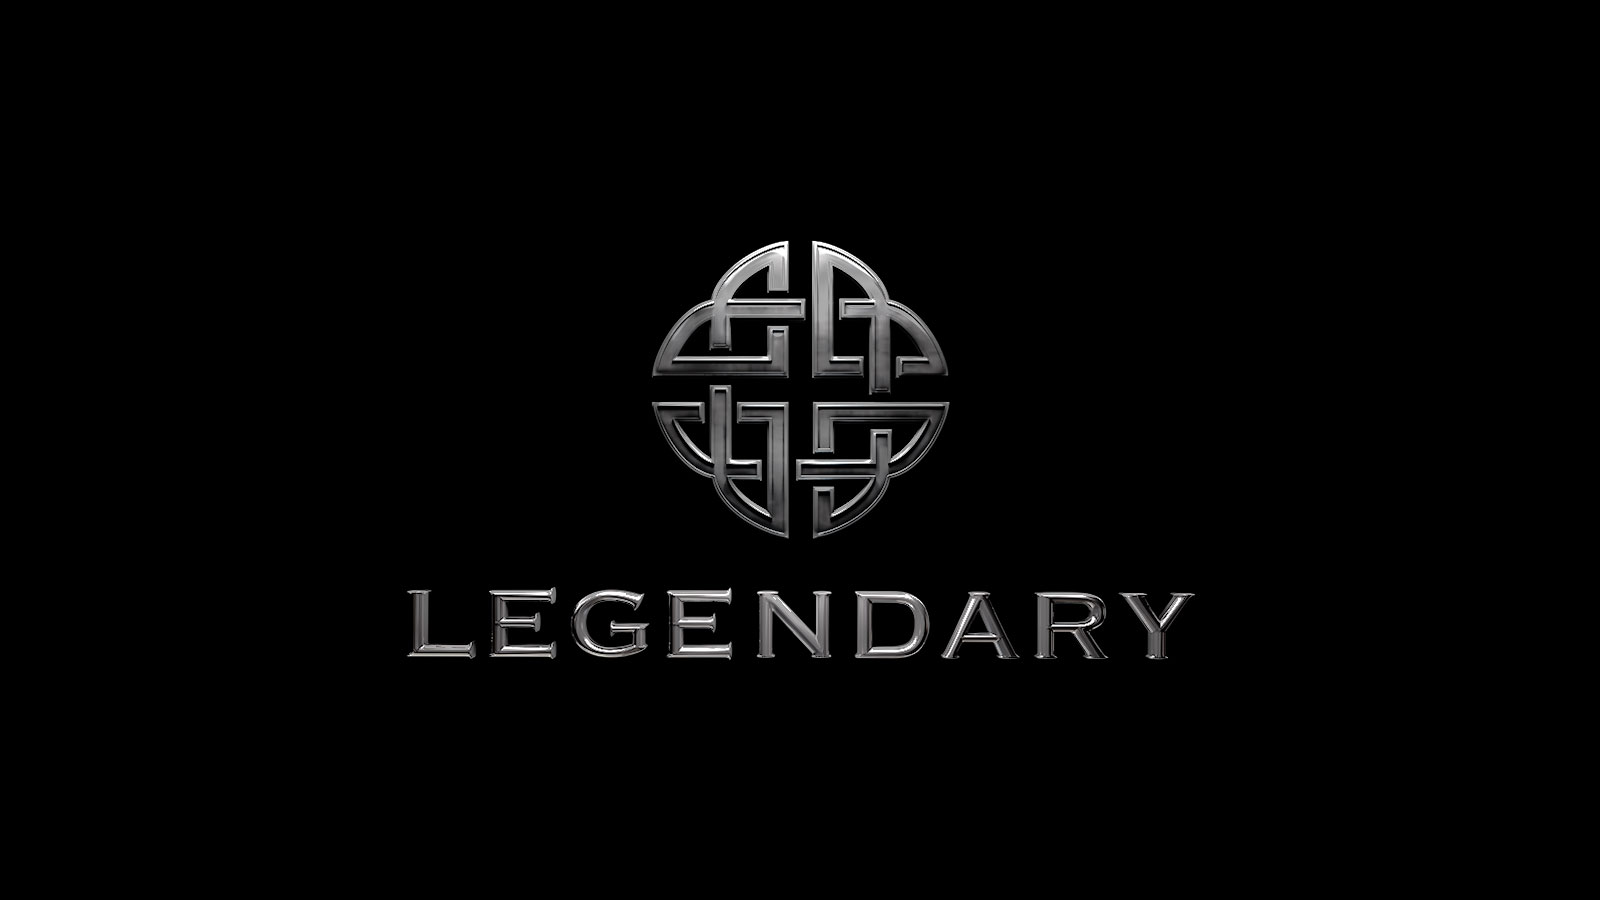 Conglomerado chino adquiere Legendary Entertainment por 3.500 millones